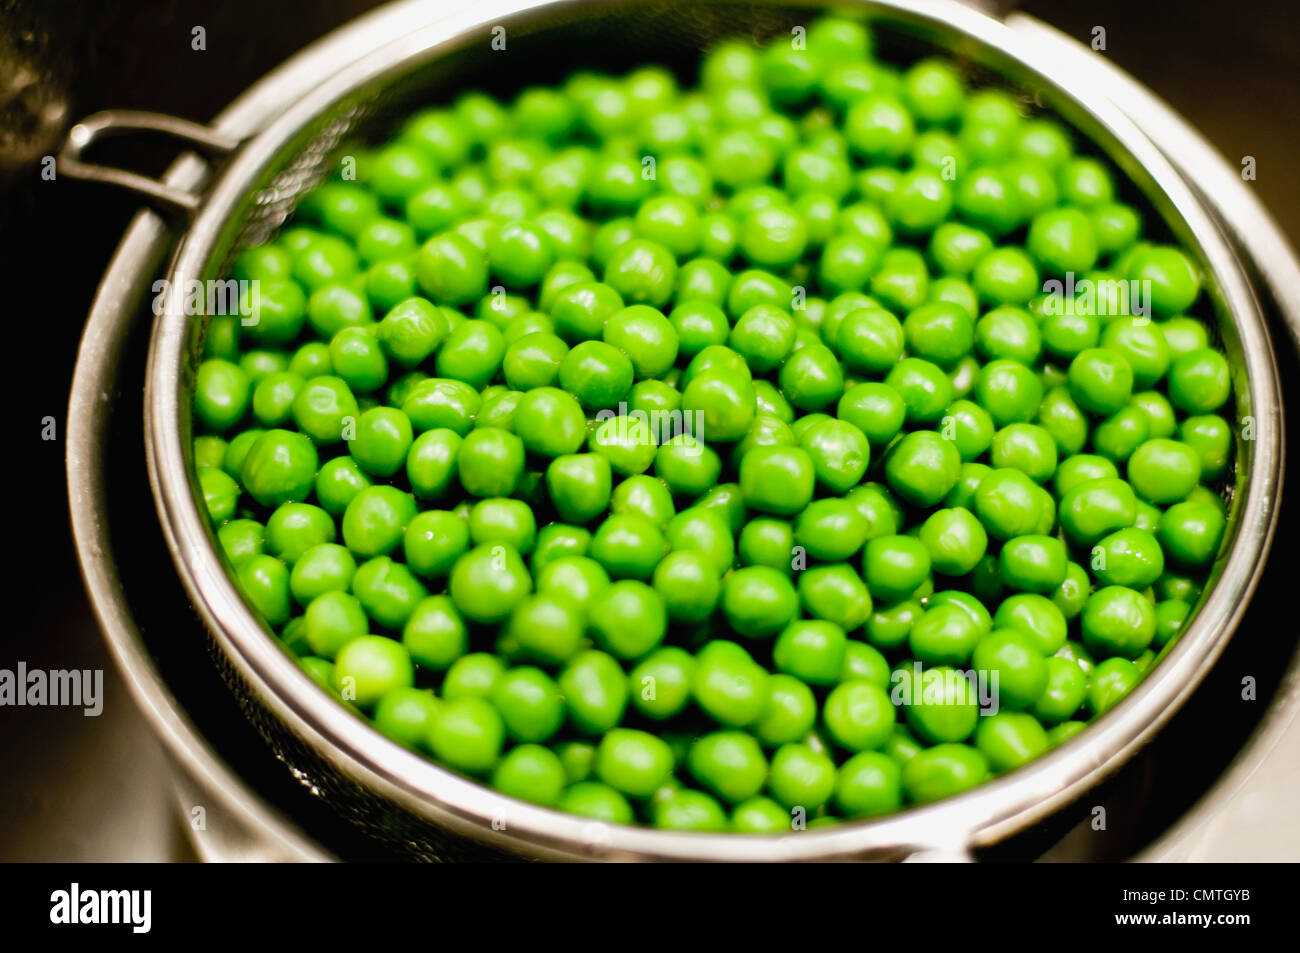 Close-up of green peas - Stock Image